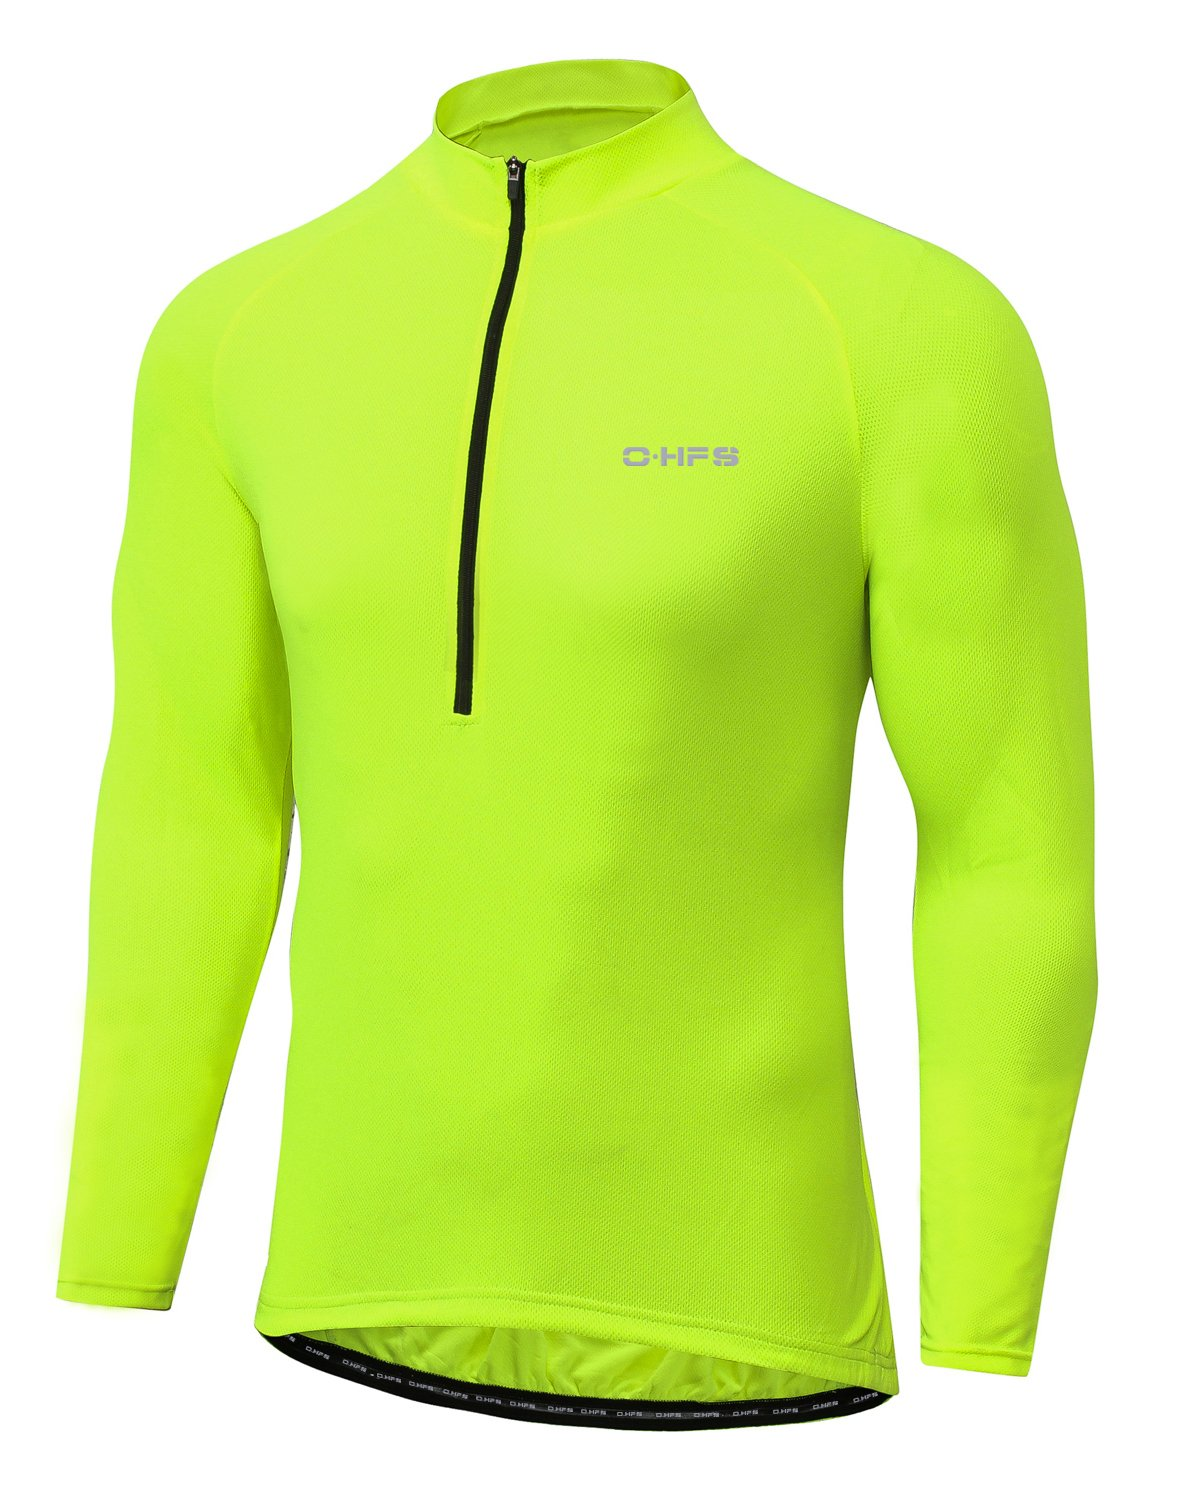 Men's Cycling Jersey, Long Sleeve Bicycle Bike Shirt, Reflective & Quick Dry Rhino